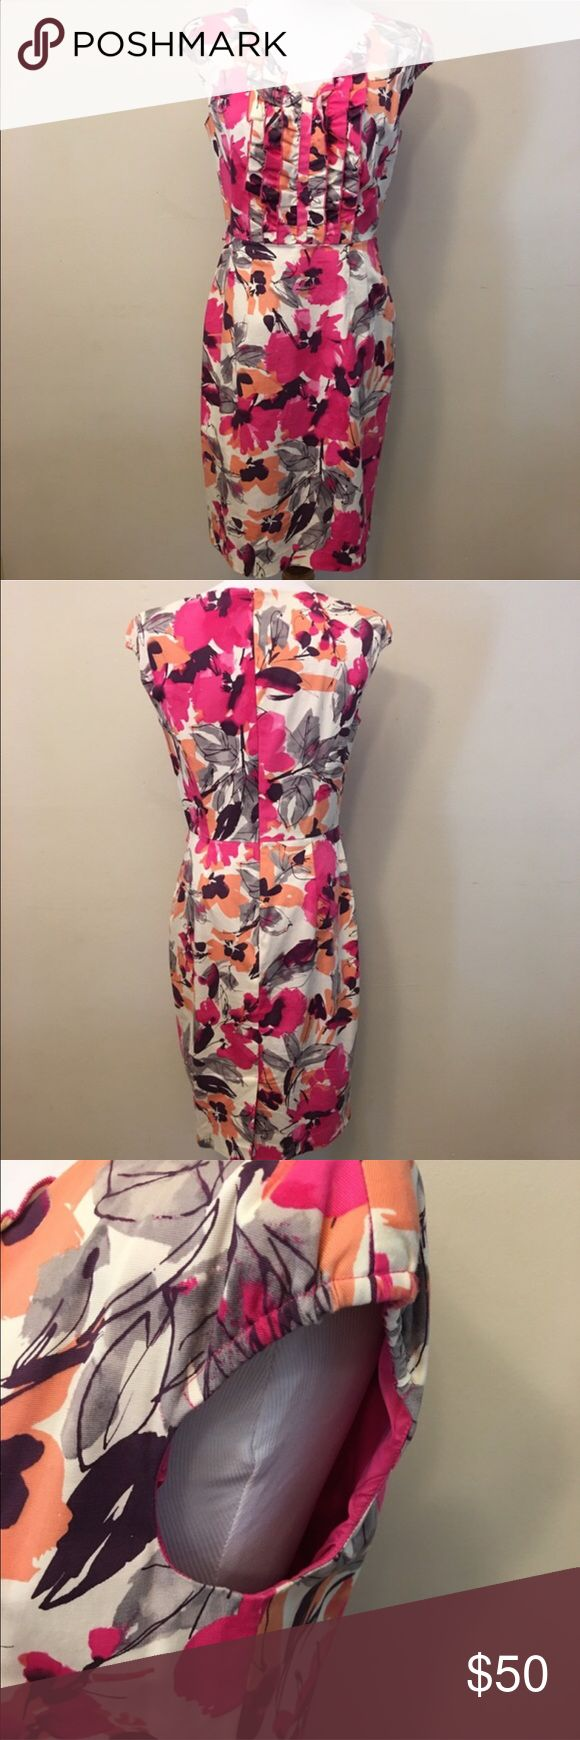 """Adrianna Papell Spring Floral Pencil/Wiggle Dress Beautiful, fully lined dress with small cap sleeves, front ruffles, and a back zip entry. There is a little bit of stretch to this item. About 38"""" at bust, unstretched. 37"""" from shoulder to bottom hem. there was a small white belt with this dress when I originally purchased it, but it is no longer around. (Daughter stole it? Who knows. The universe ate it...) In outstanding condition. Adrianna Papell Dresses Midi"""